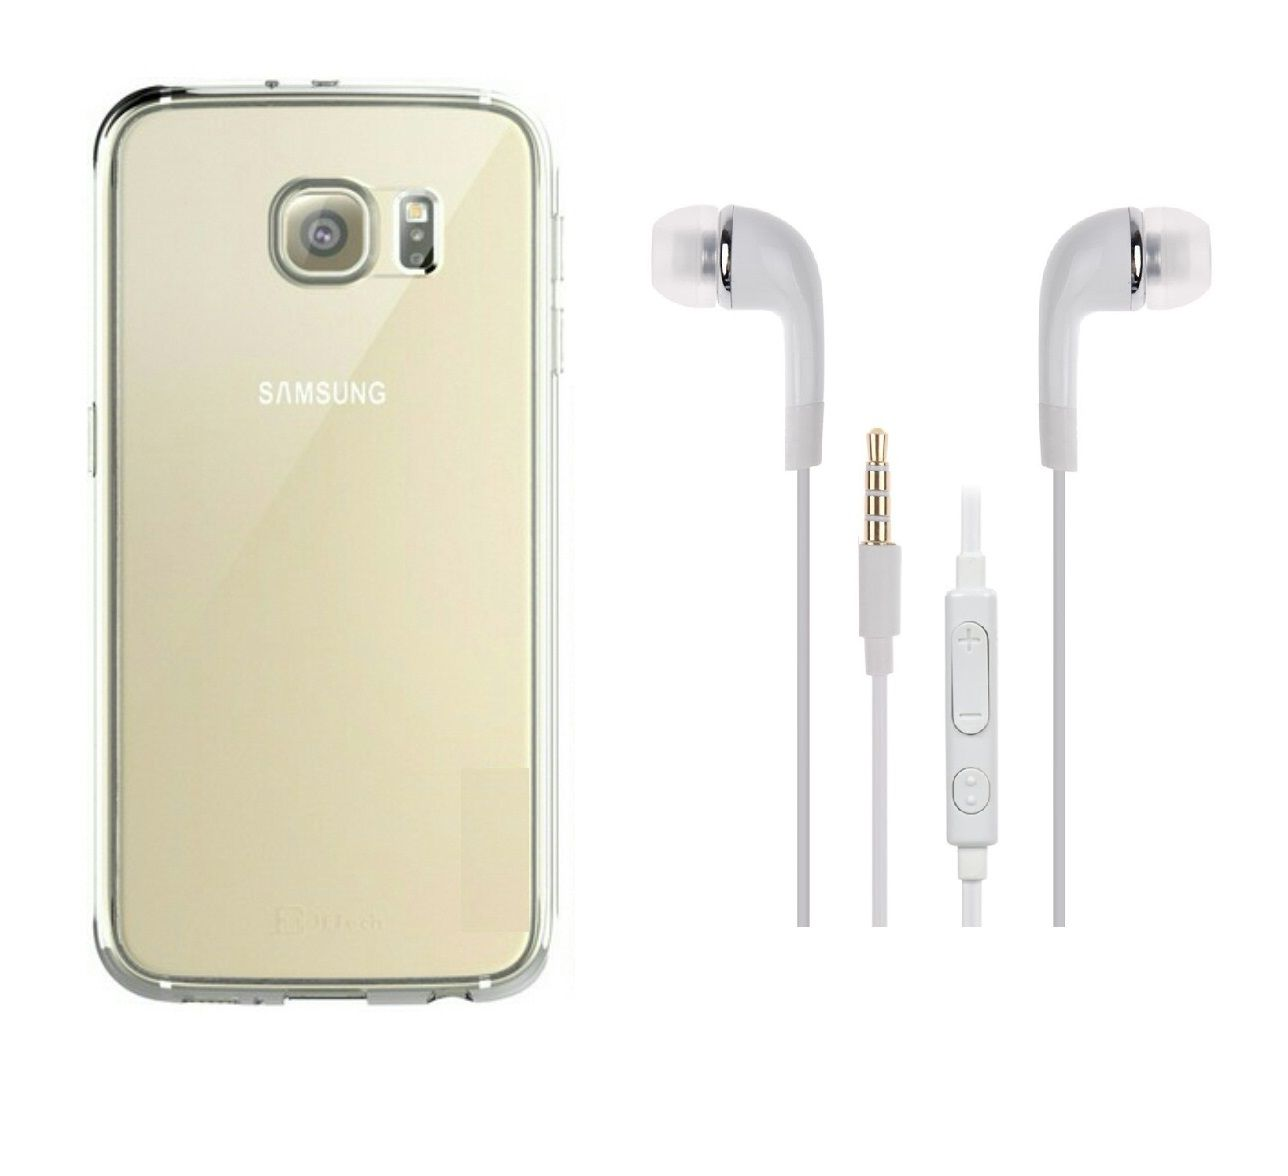 size 40 9a85f 82bc1 Samsung Galaxy S6 Back Cover transparent and 3.5MM Jack Premium Earphones  White by iCopertina